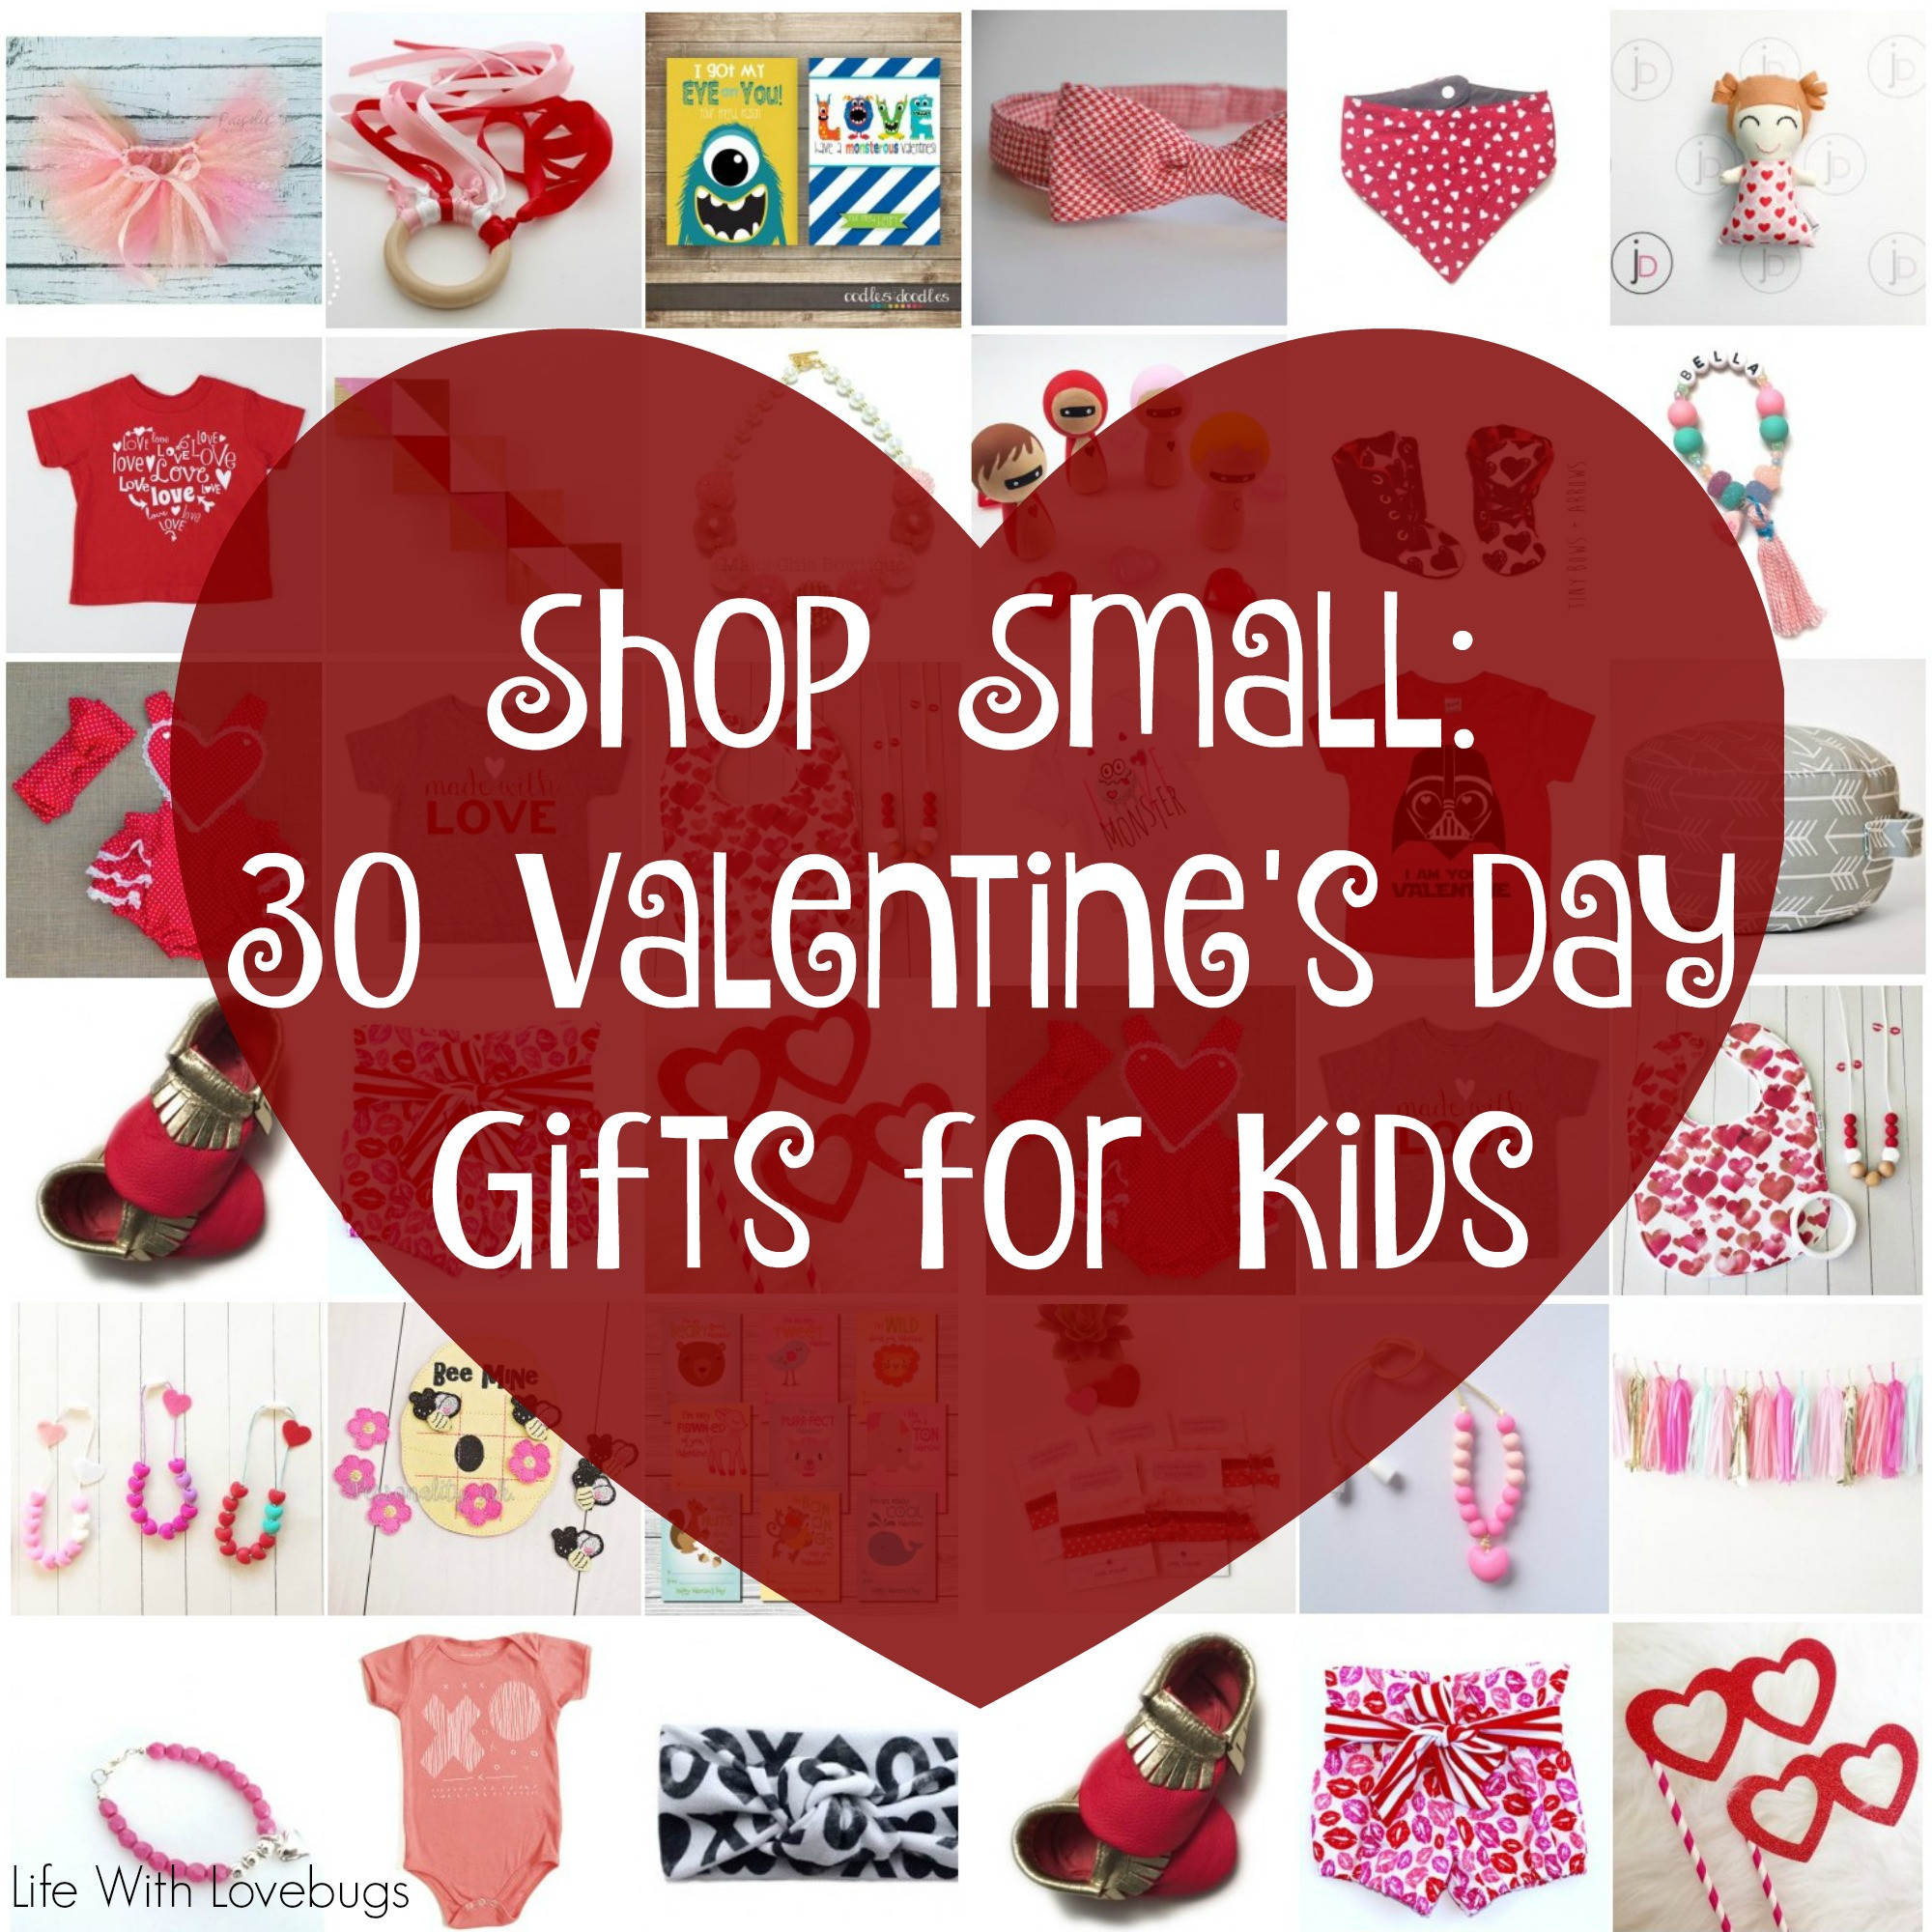 Best ideas about Small Valentine Gift Ideas . Save or Pin Shop Small 30 Valentines Day Gifts for Kids Life With Now.